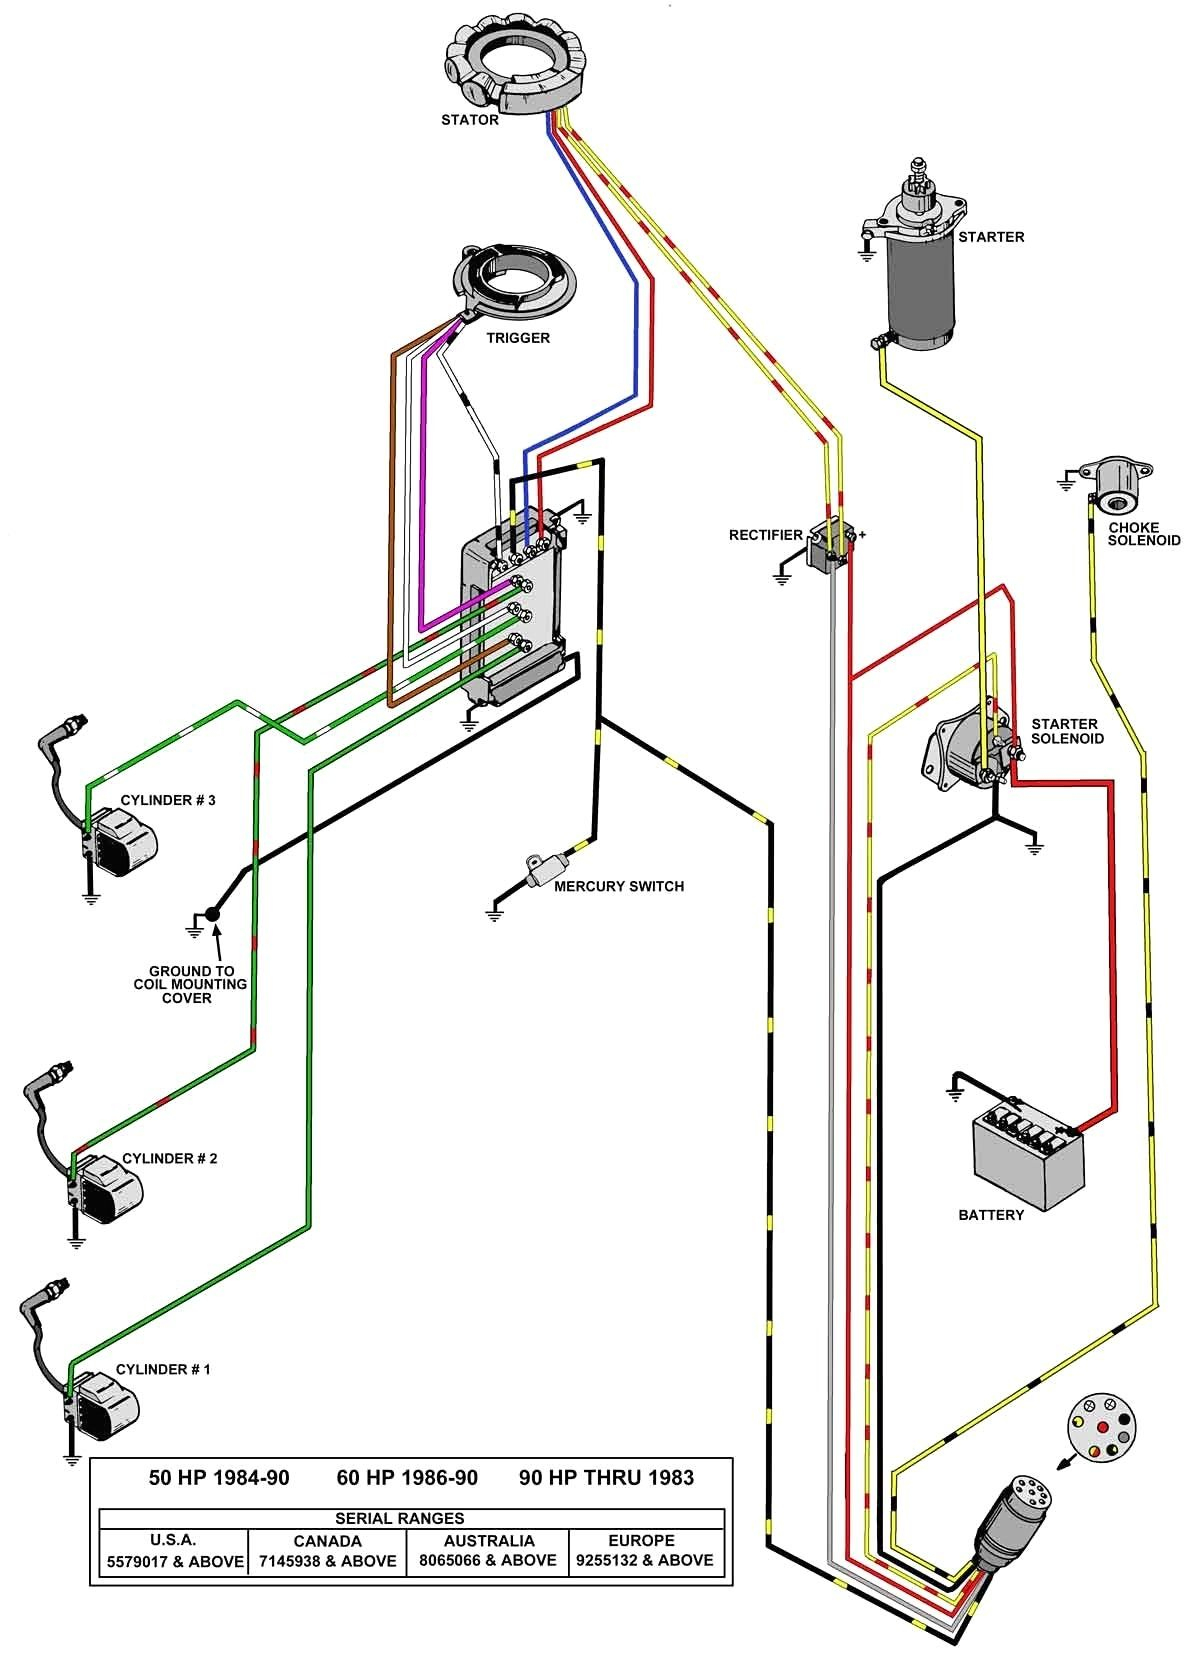 Mercury Marine Ignition Switch Wiring Diagram | Wiringdiagram - Mercury Outboard Wiring Diagram Ignition Switch